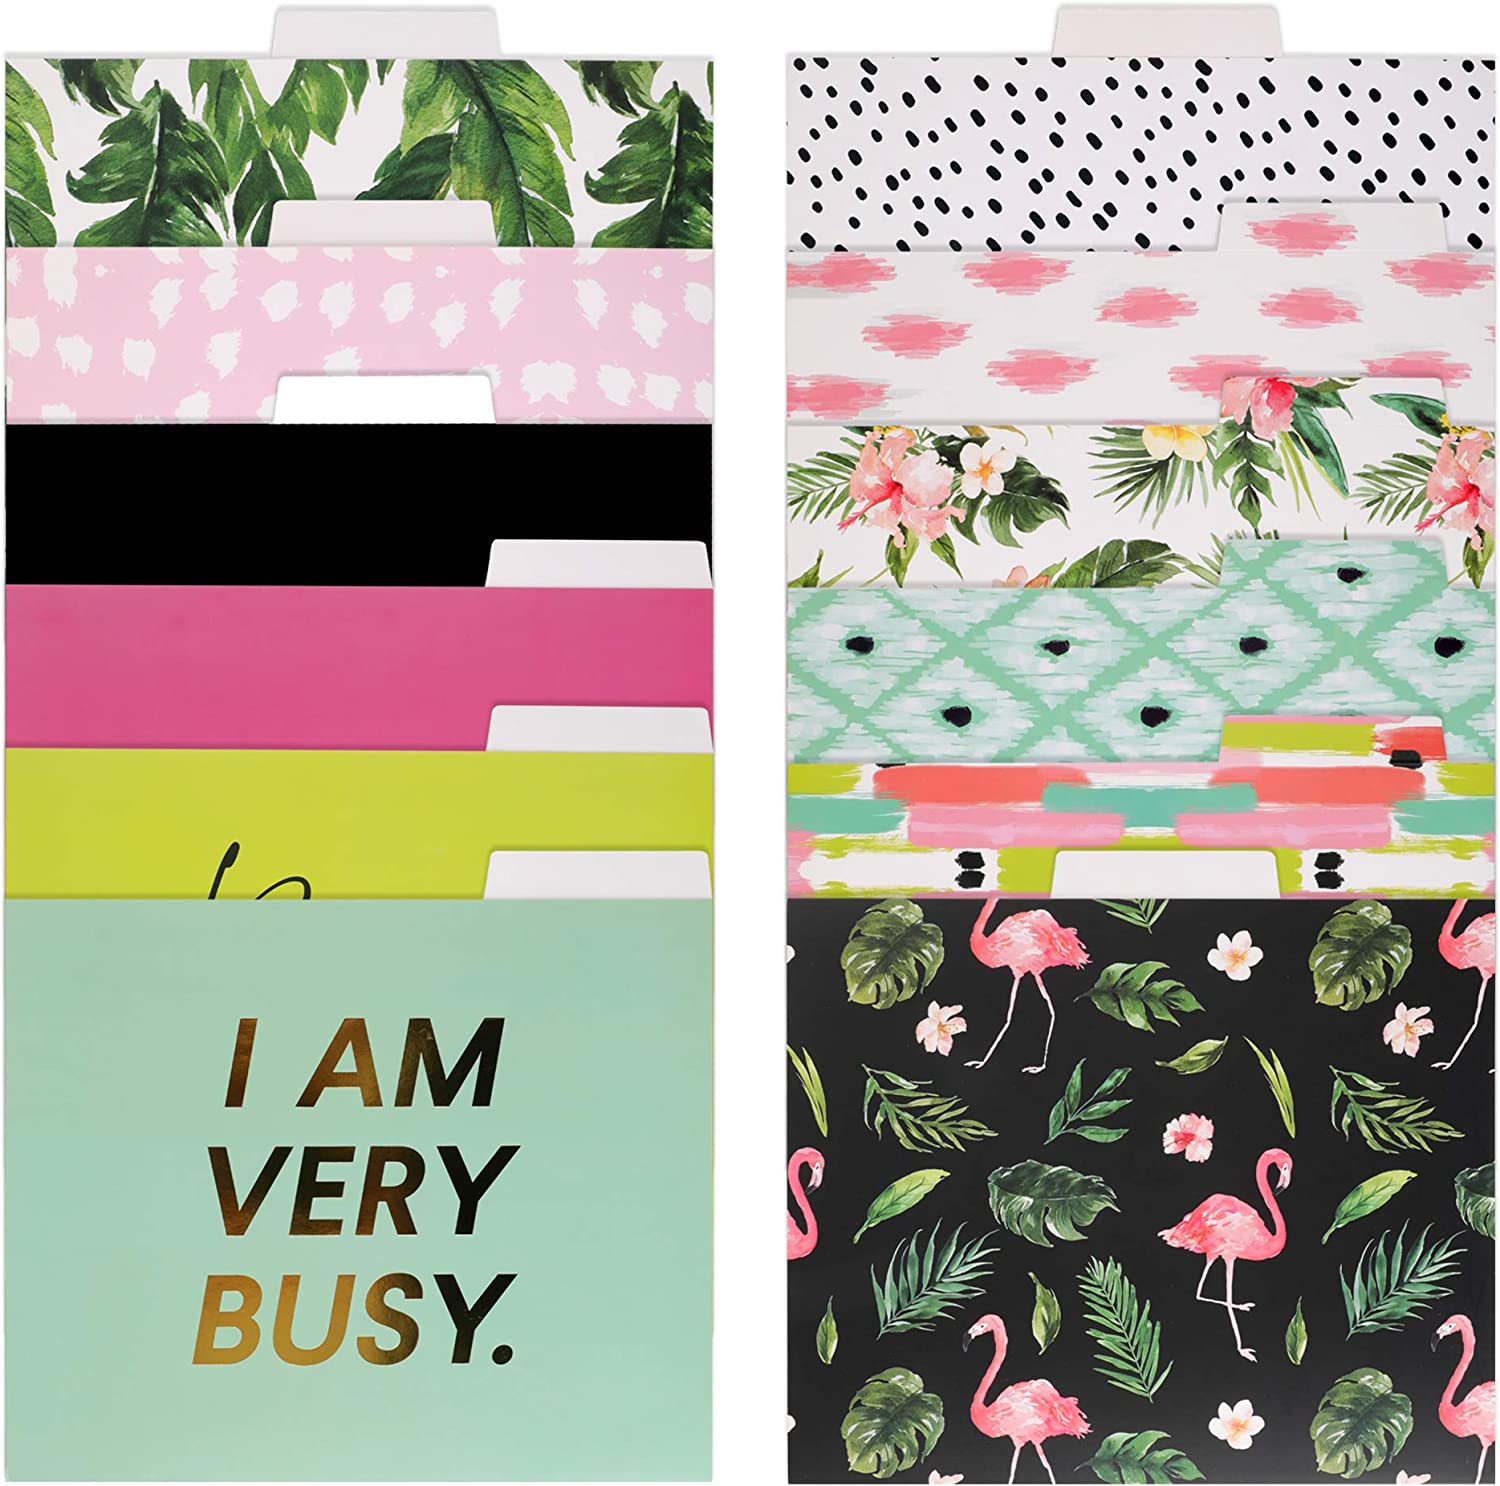 Decorative Gold Foil File Folders - 12 Tropical Colored File Folders Letter Size, 1/3-Cut Tabs, Includes Cute Designs and Gold foil Font, Office Supplies File Filing Organizers, 9 x 11.5 Inches